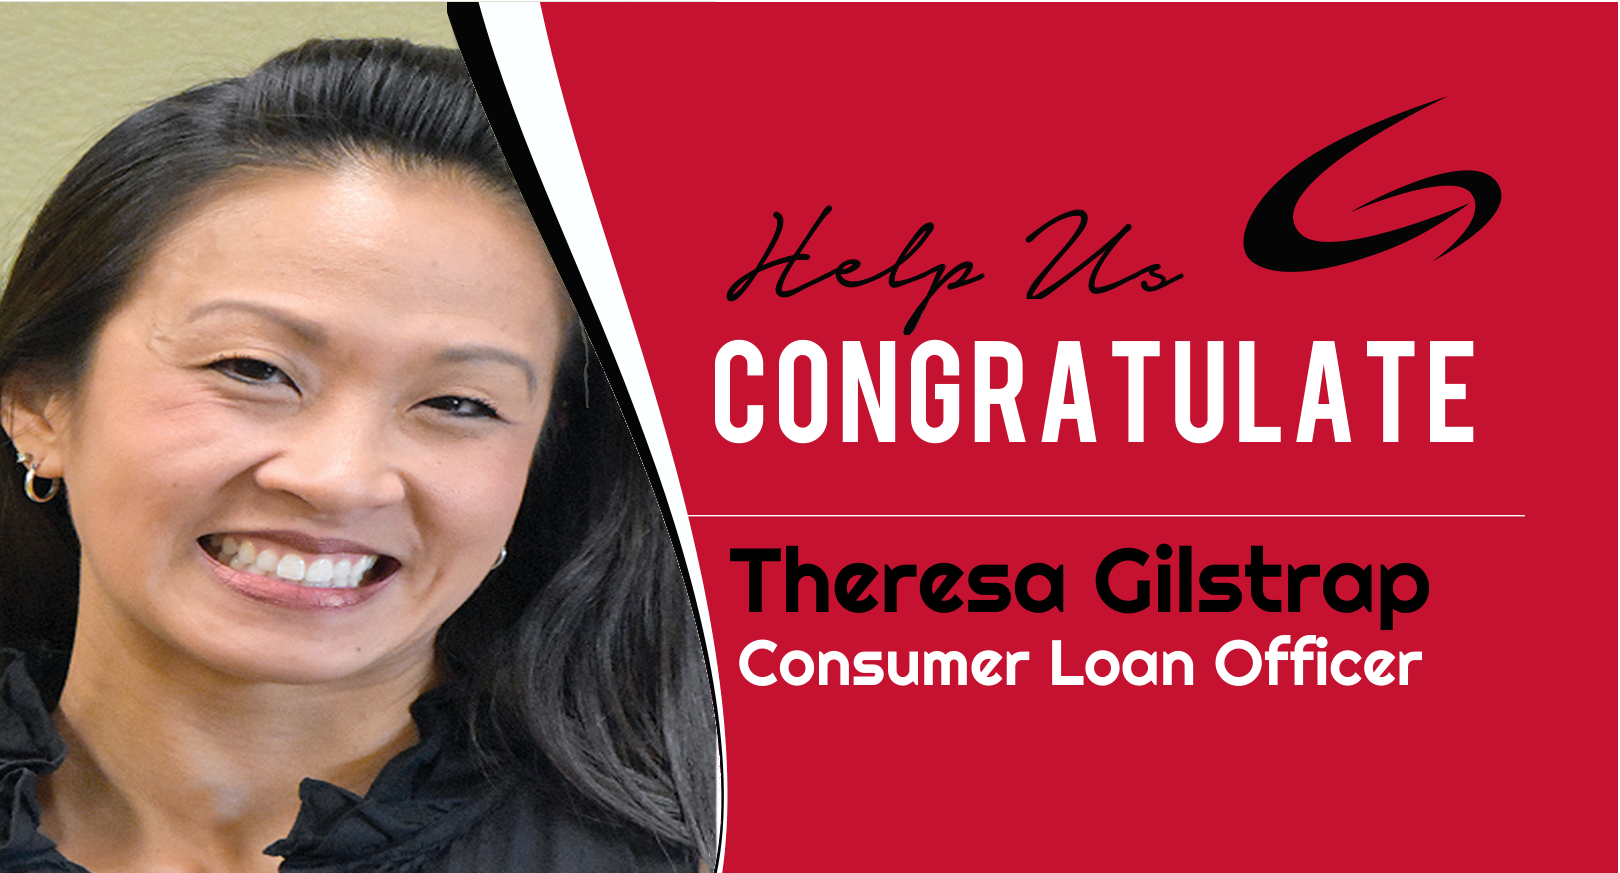 Congratulations to Theresa Gilstrap on becoming a Consumer Loan Officer